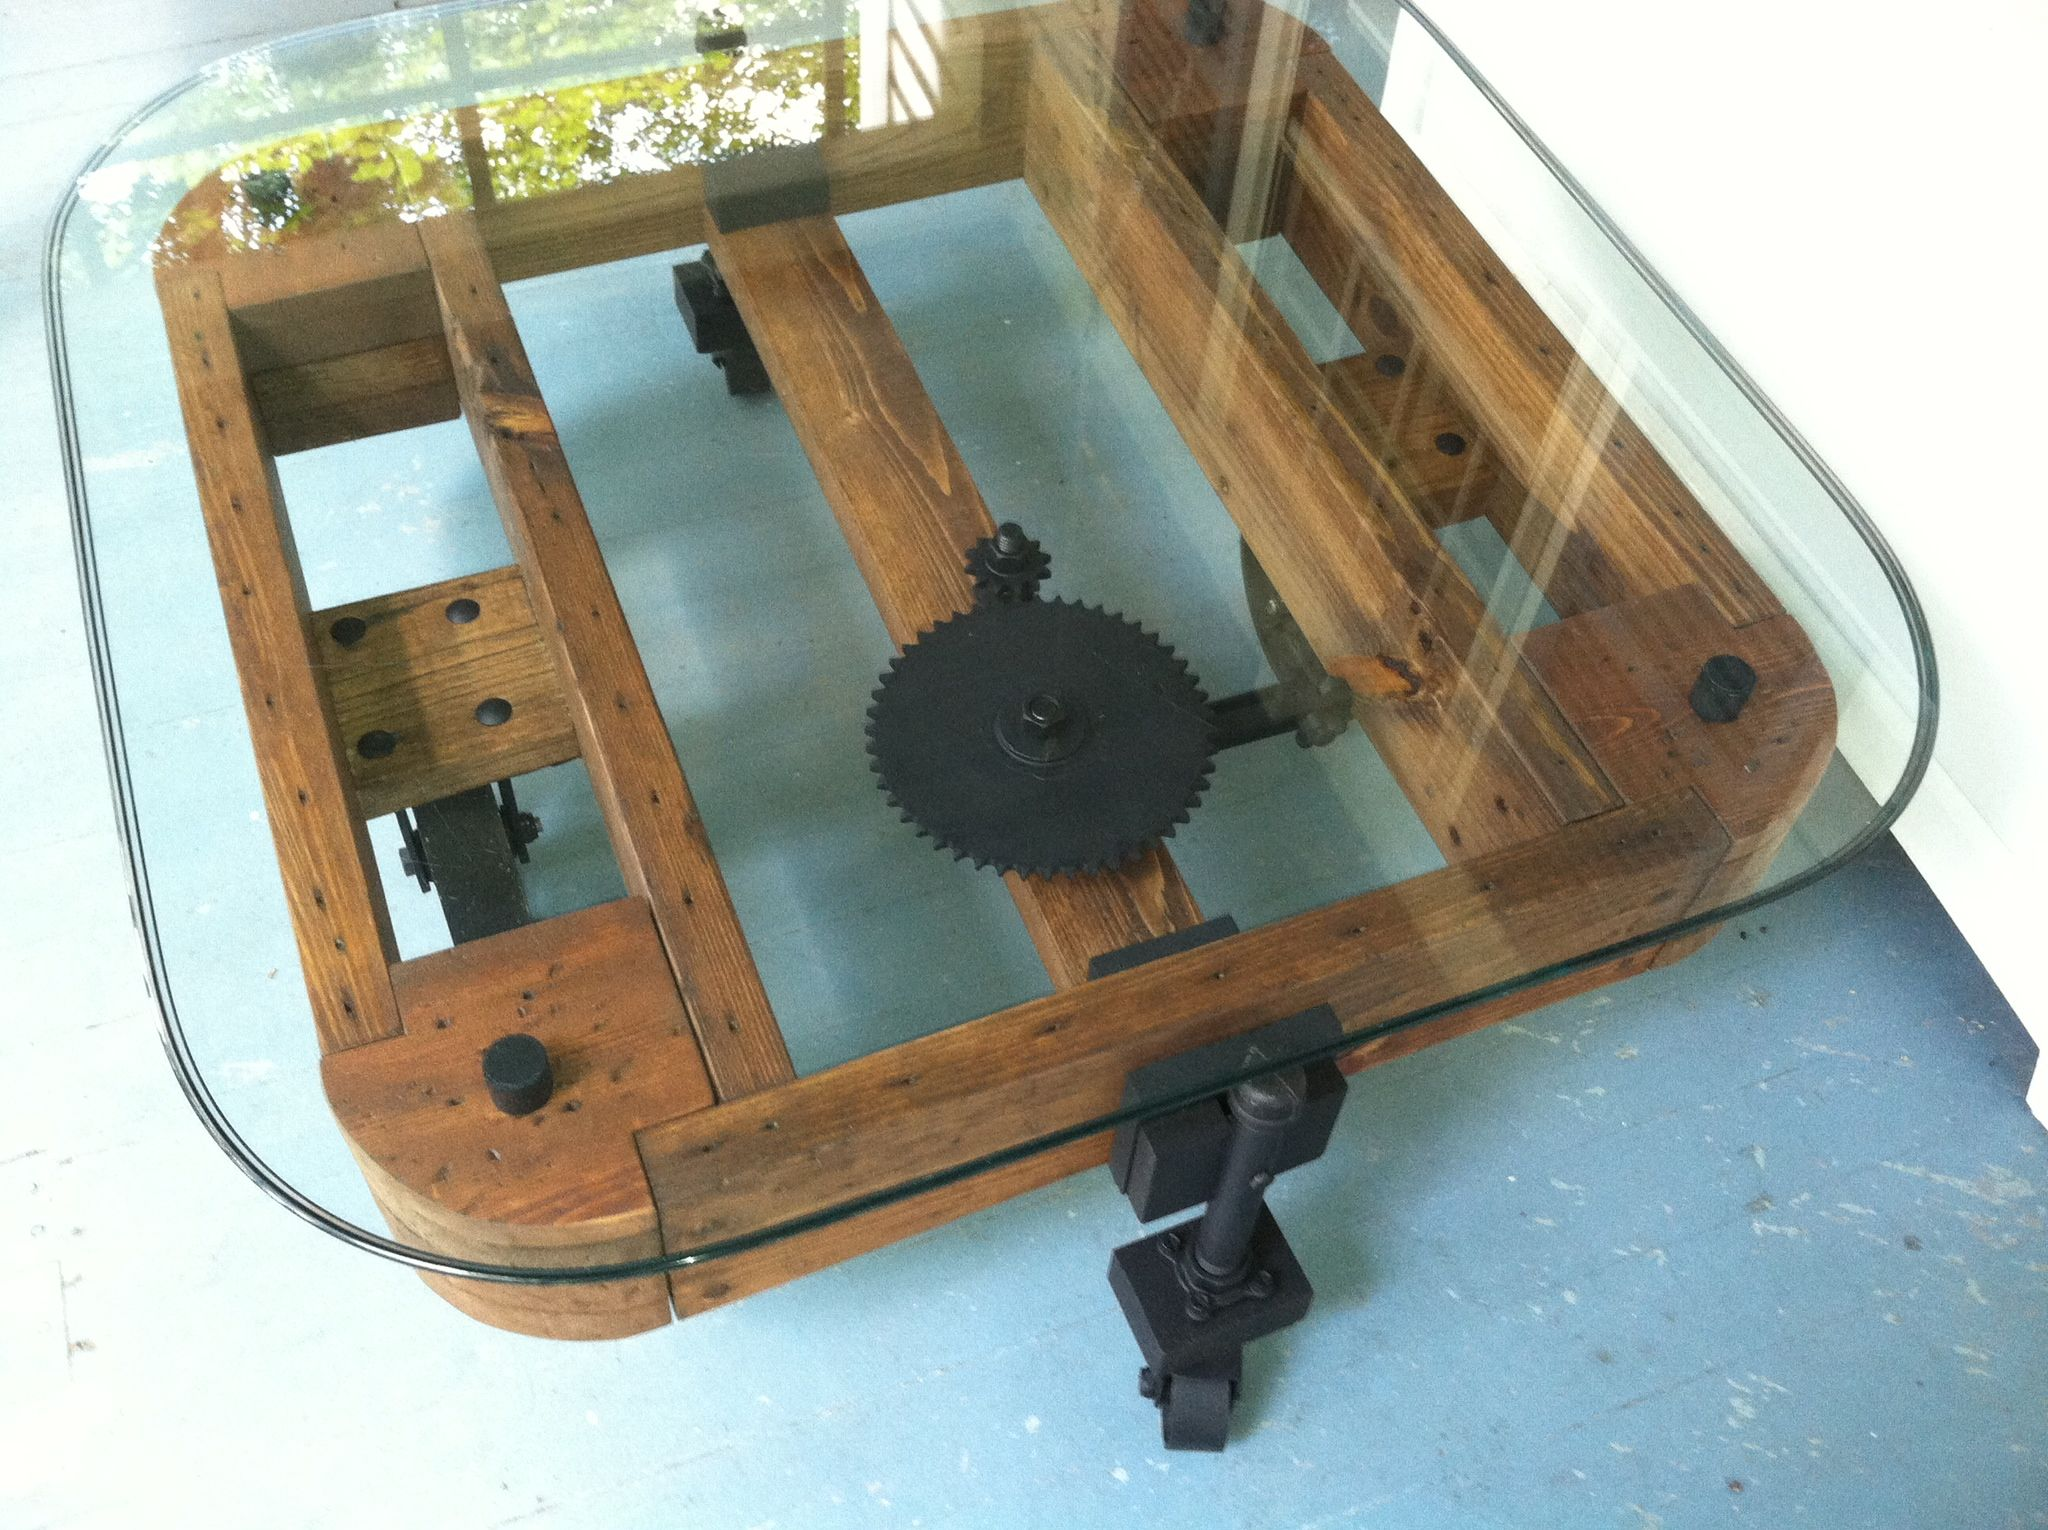 glass table top view. Top View Of Industrial Coffee Table With Glass Top. I Love The Gears. Repurposed He Also Used Leftover Wood From A Construction Site!